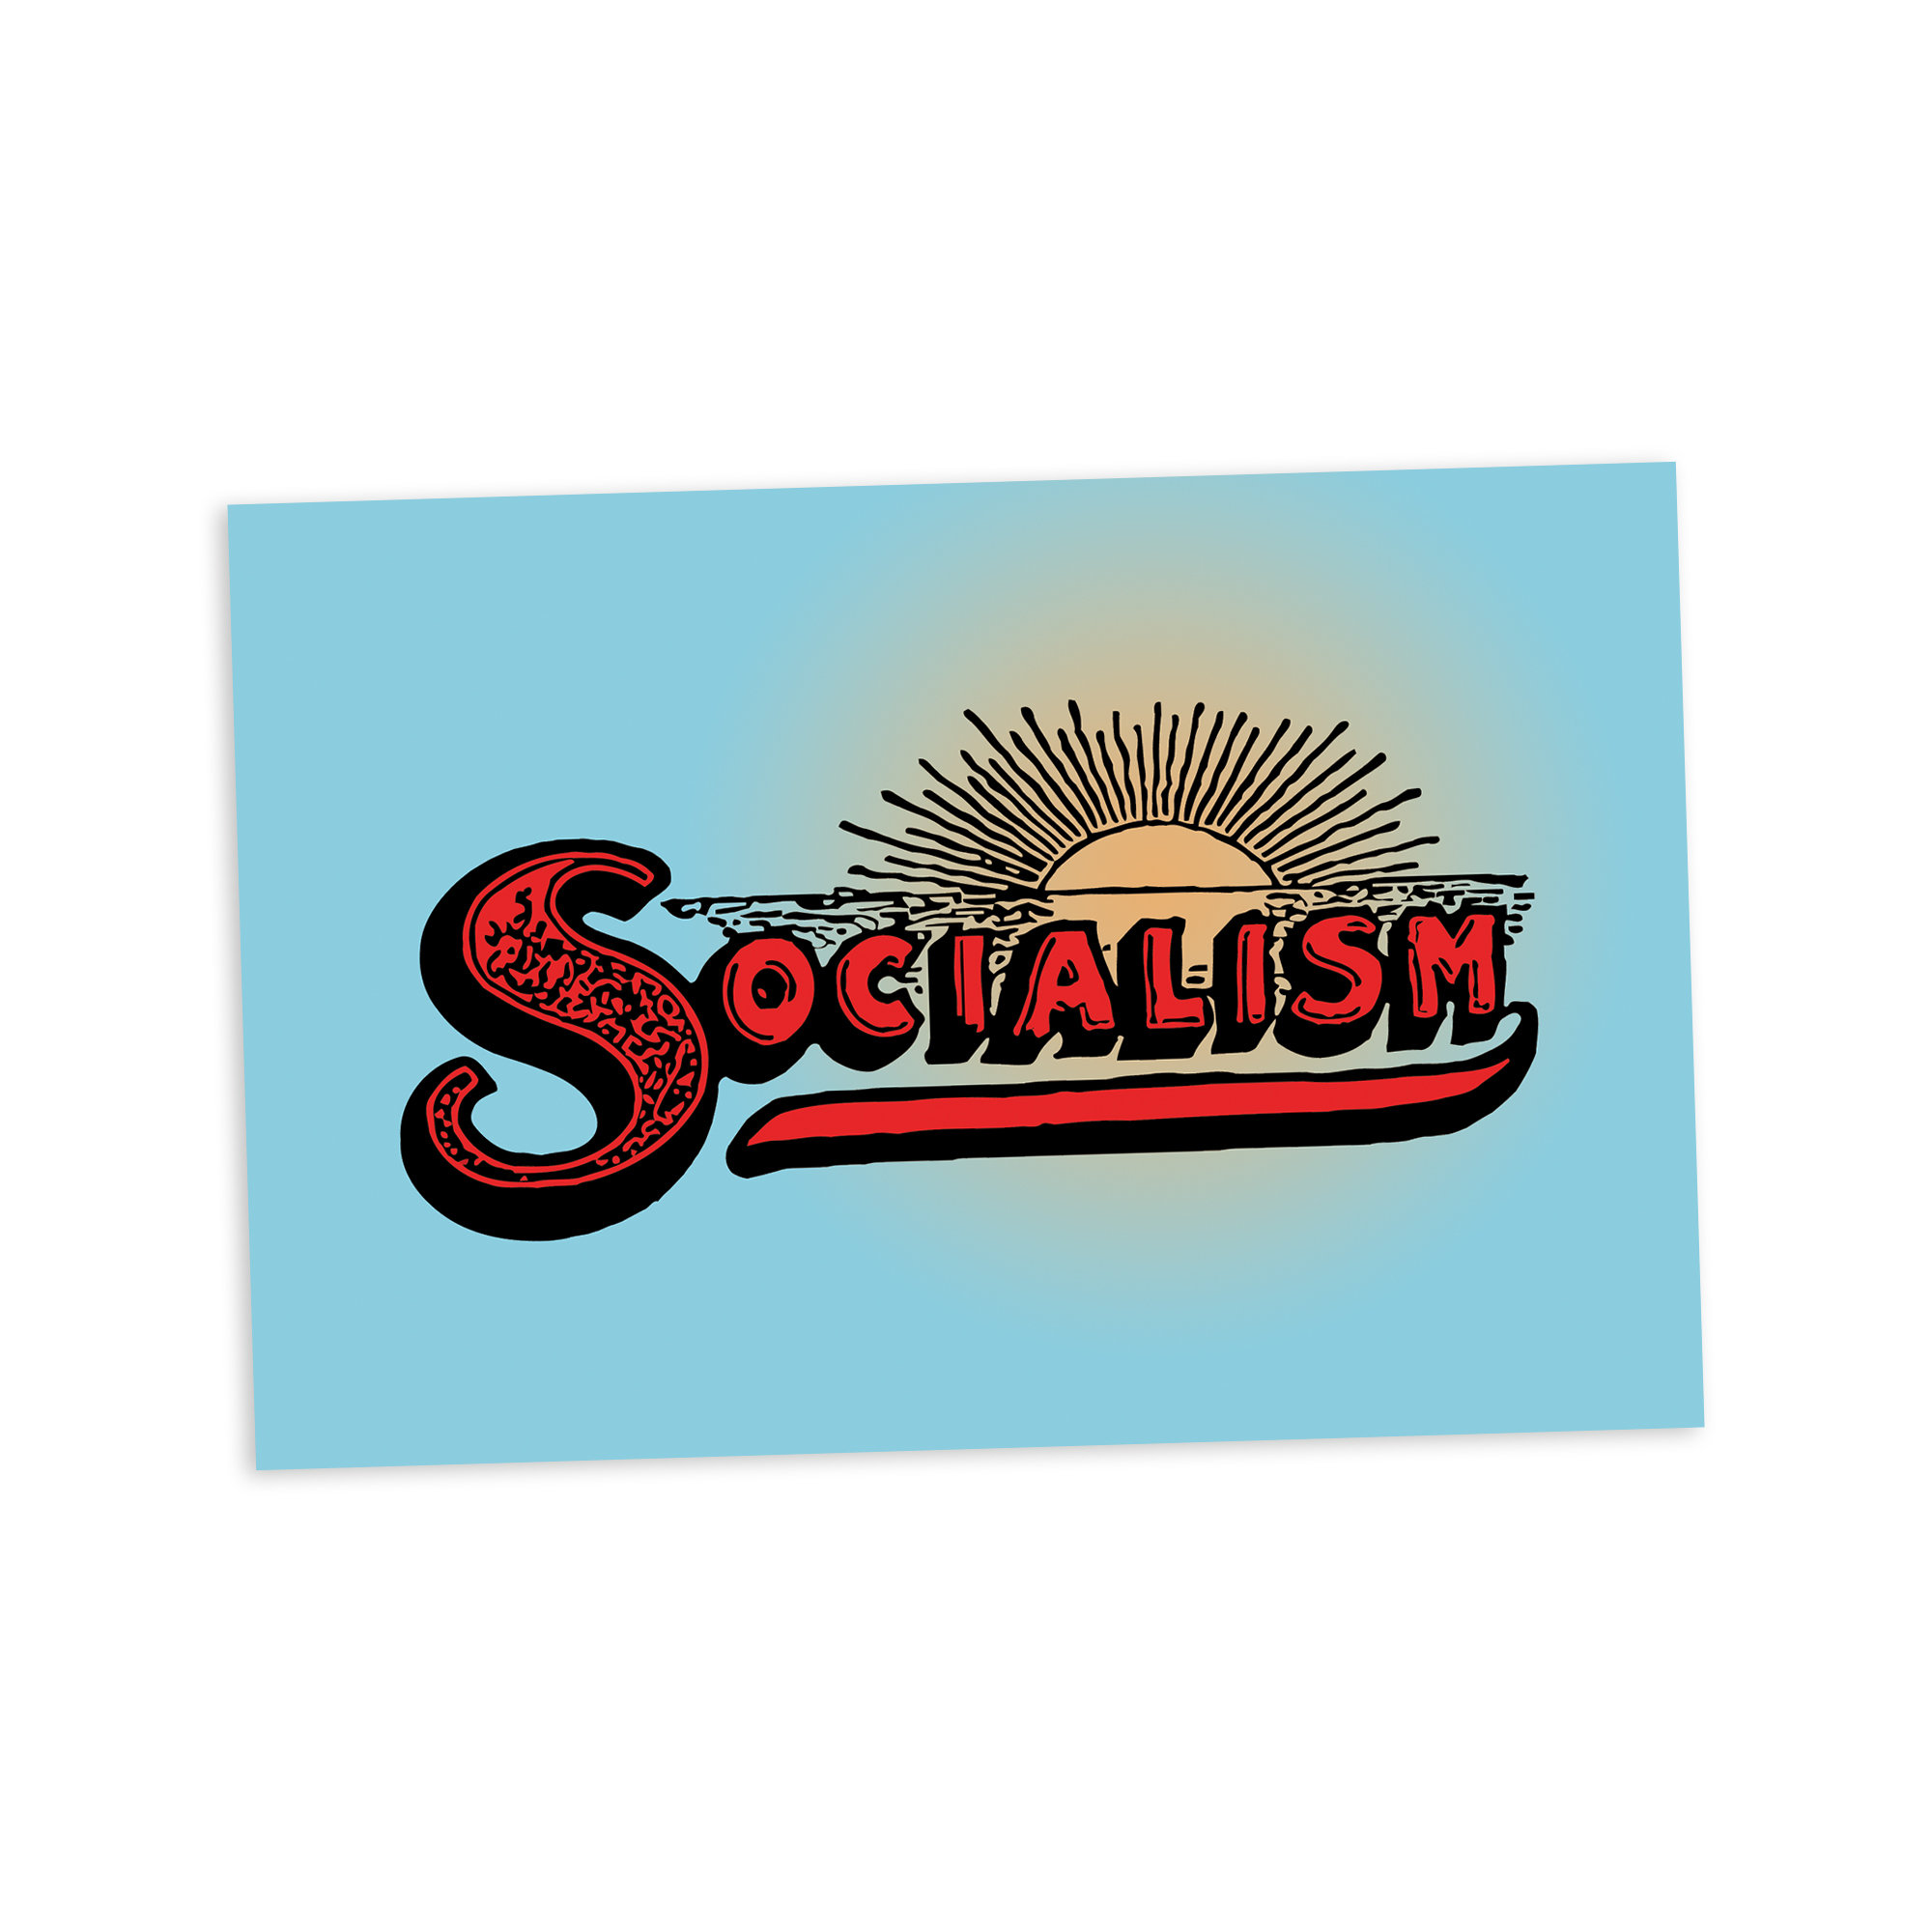 Socialism Sunrise 4×6 Postcard | Retro Socialist Flat Card Leftist Anti-Capitalist Edwardian, Stocking Stuffer Small Gift